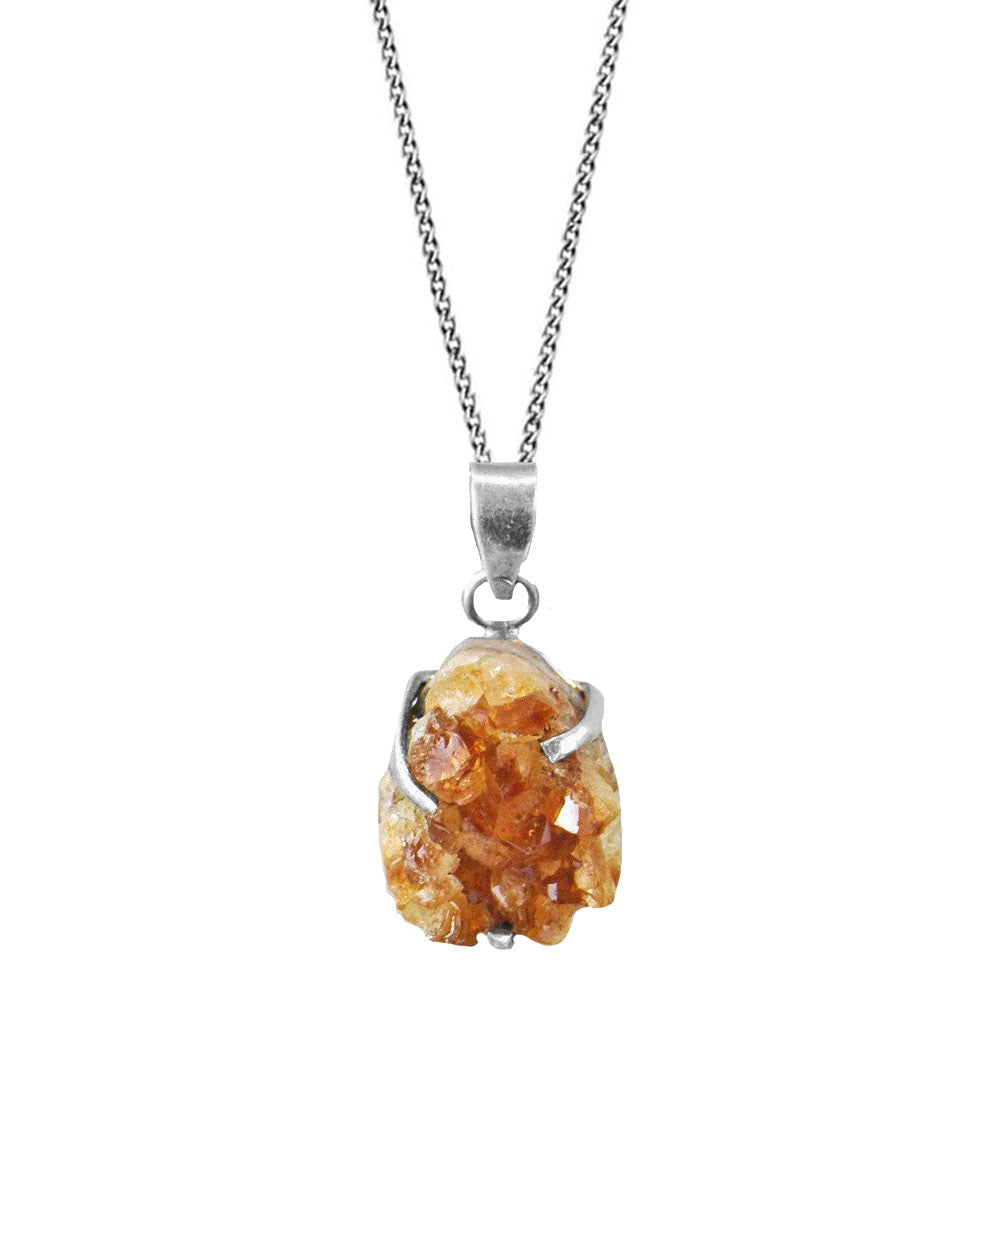 Citrine Crystal Geode Pendant Necklace Sterling Silver